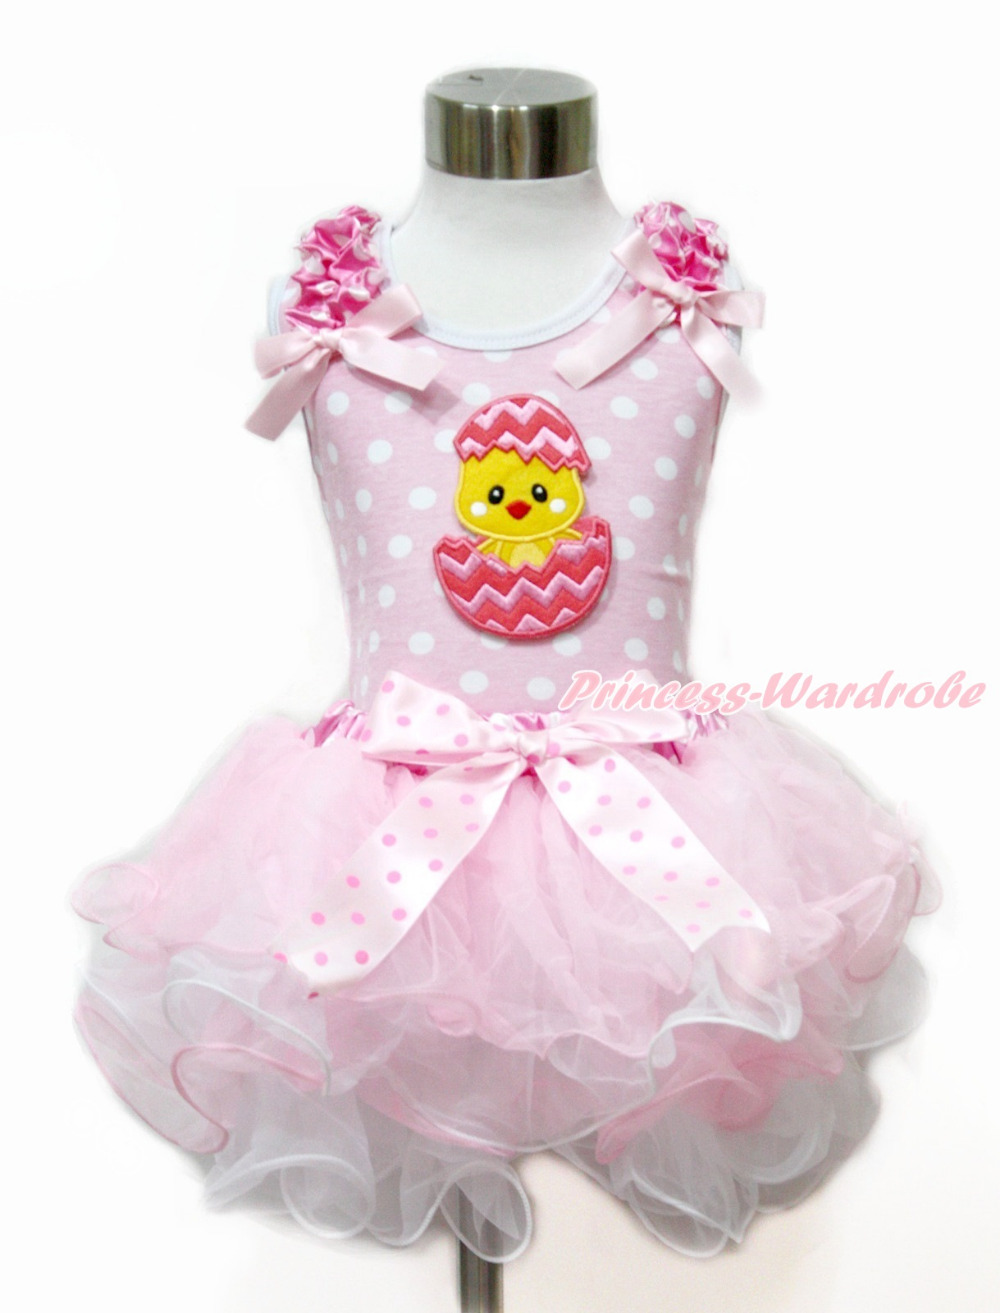 ФОТО Easter Pink White Dots Tank Top With Pink Bows & Chick Egg & Light Hot Pink White Dots Waist Pink White Petal Pettiskirt MAMH179